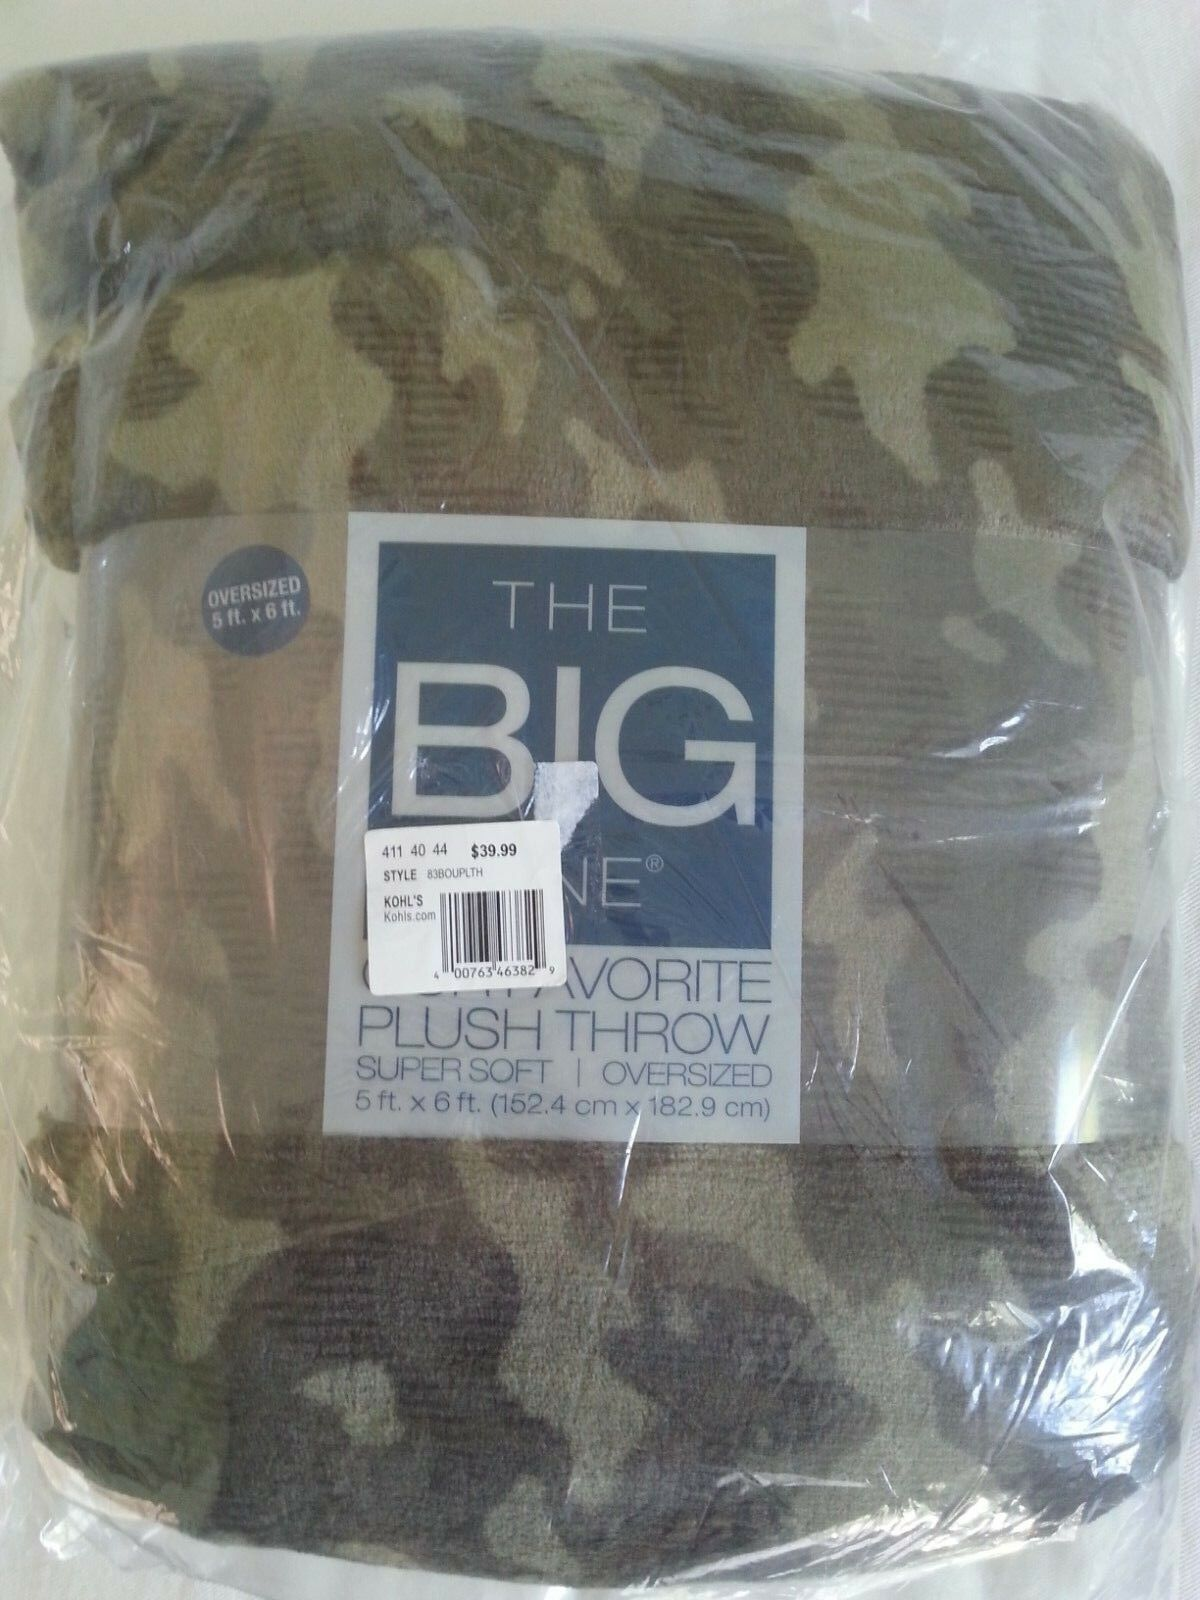 The Big One Supersoft Plush Throw Green Camo print 60 x 72